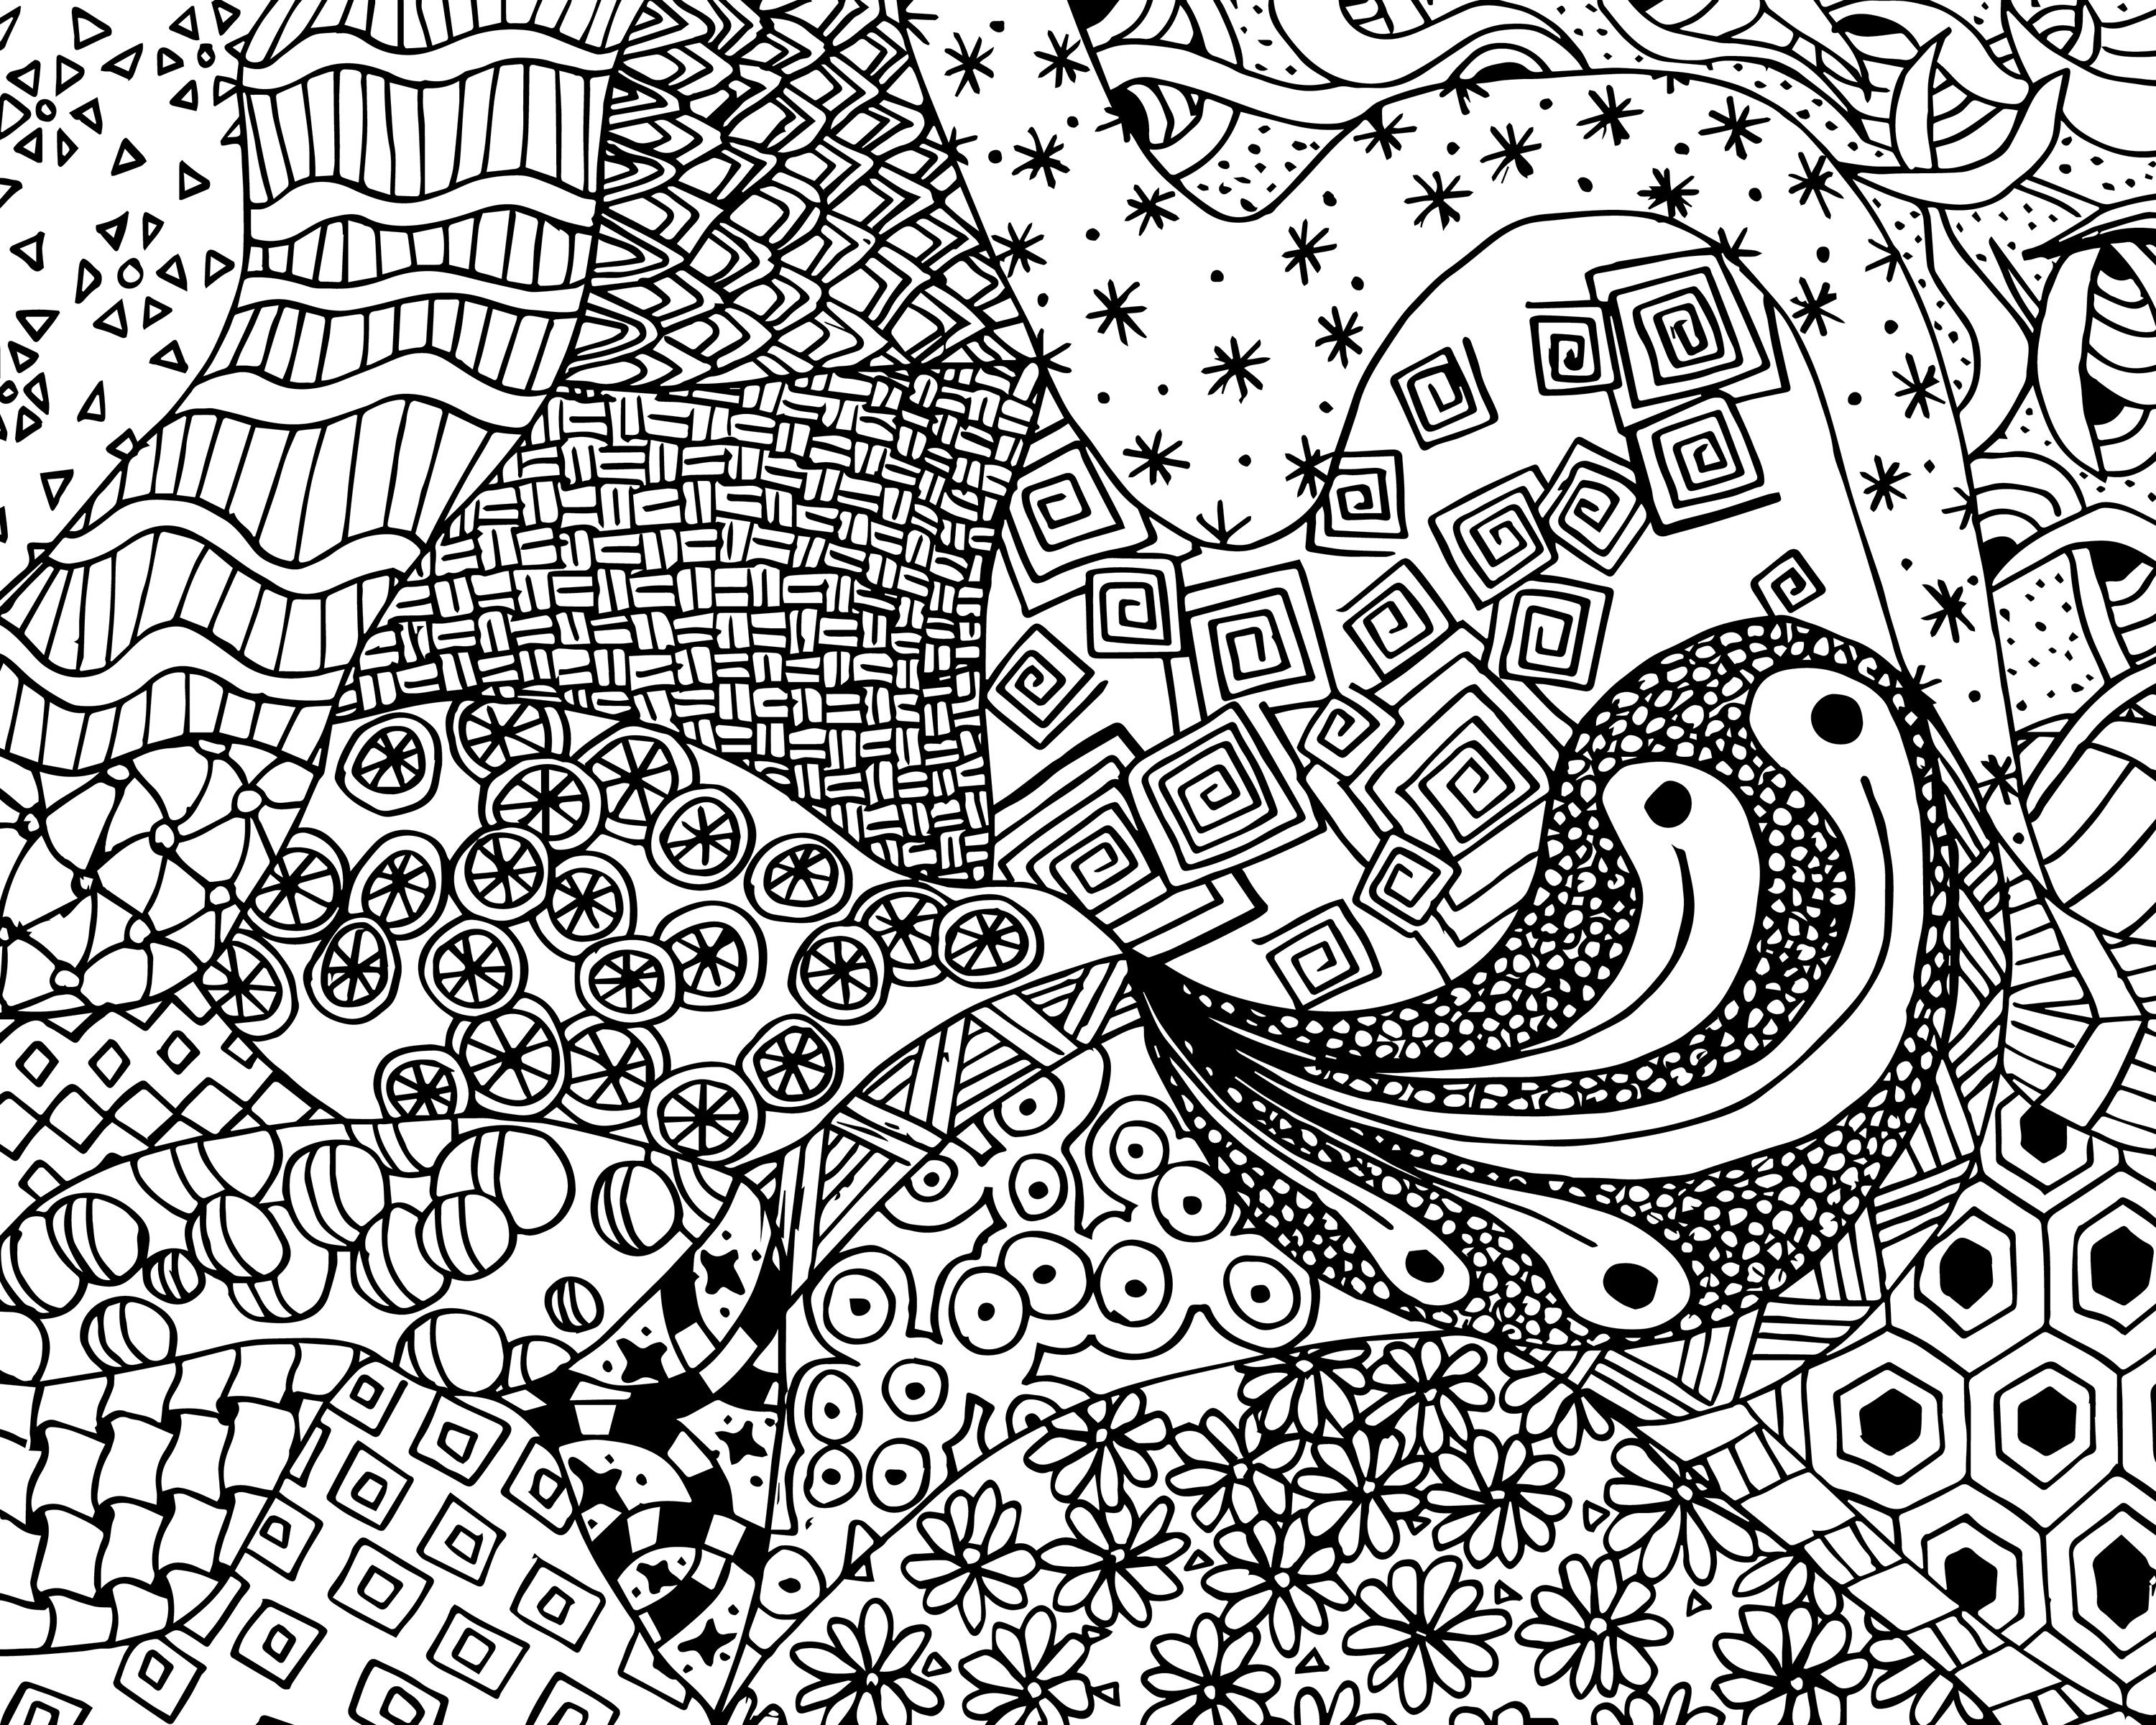 free zen coloring pages adult zen anti stress to print 10 coloring pages printable free zen coloring pages